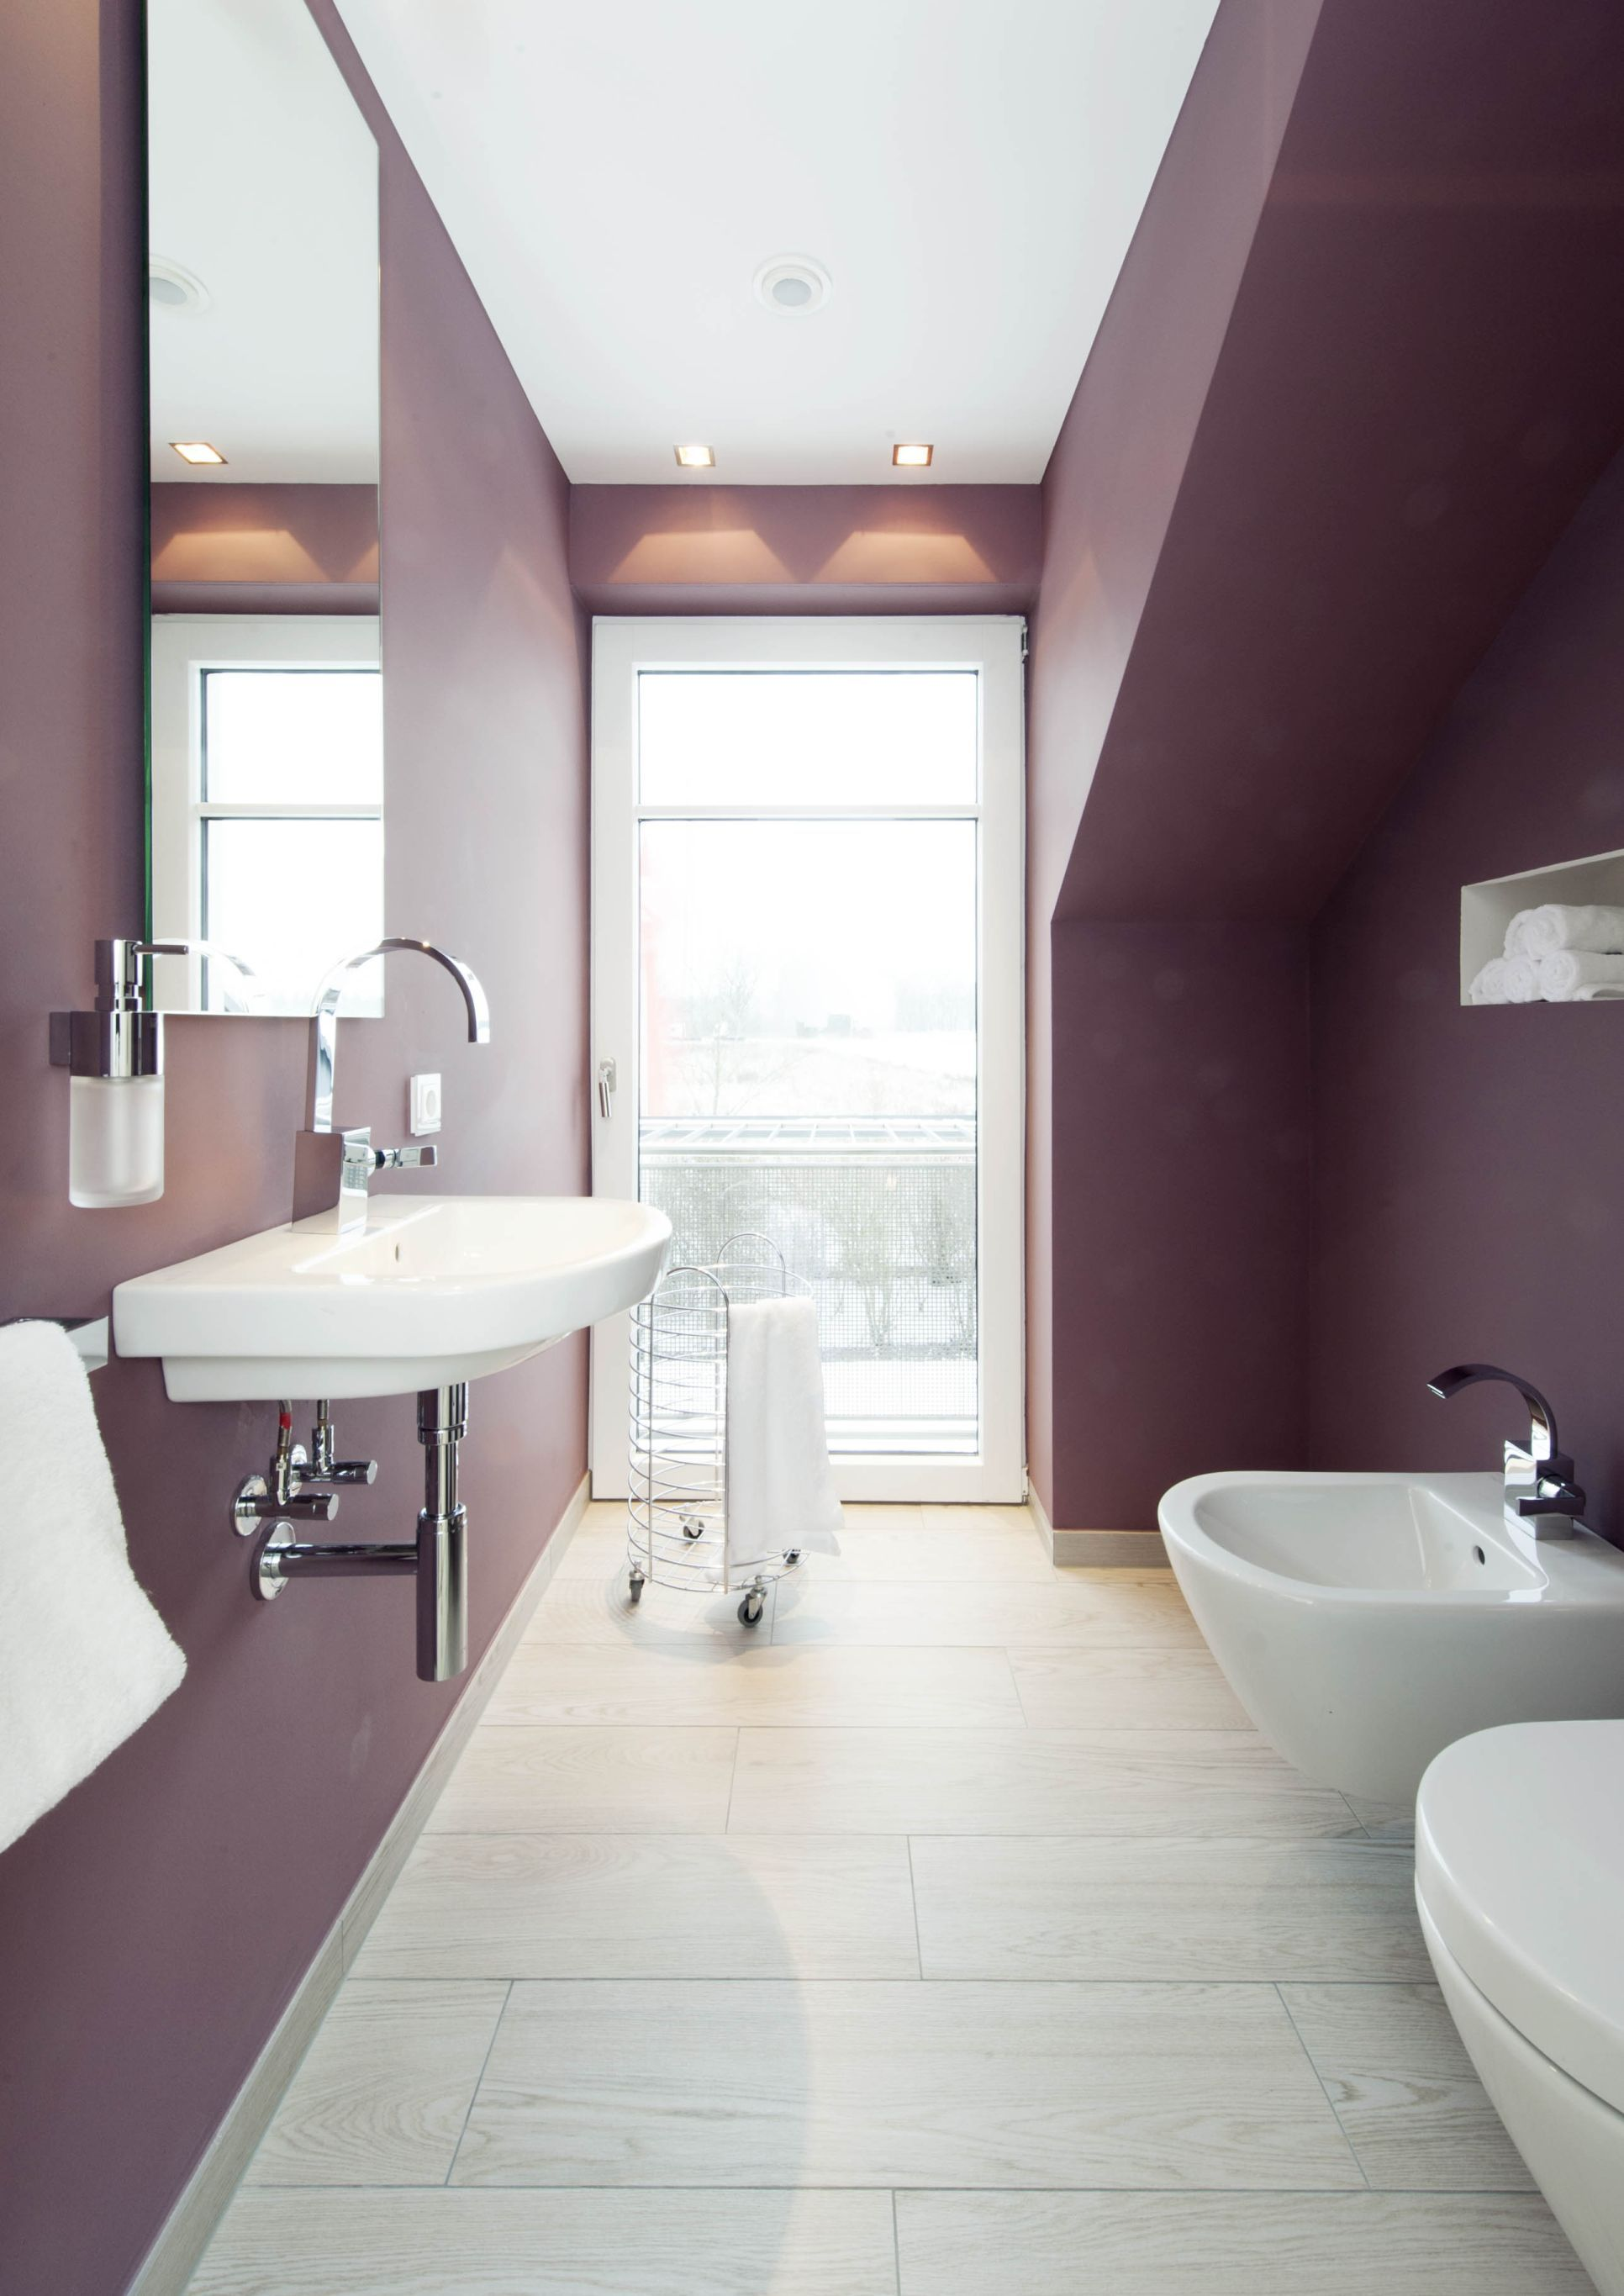 Pin By Kathrin On Haus Guest Toilet Design Interior Decorating